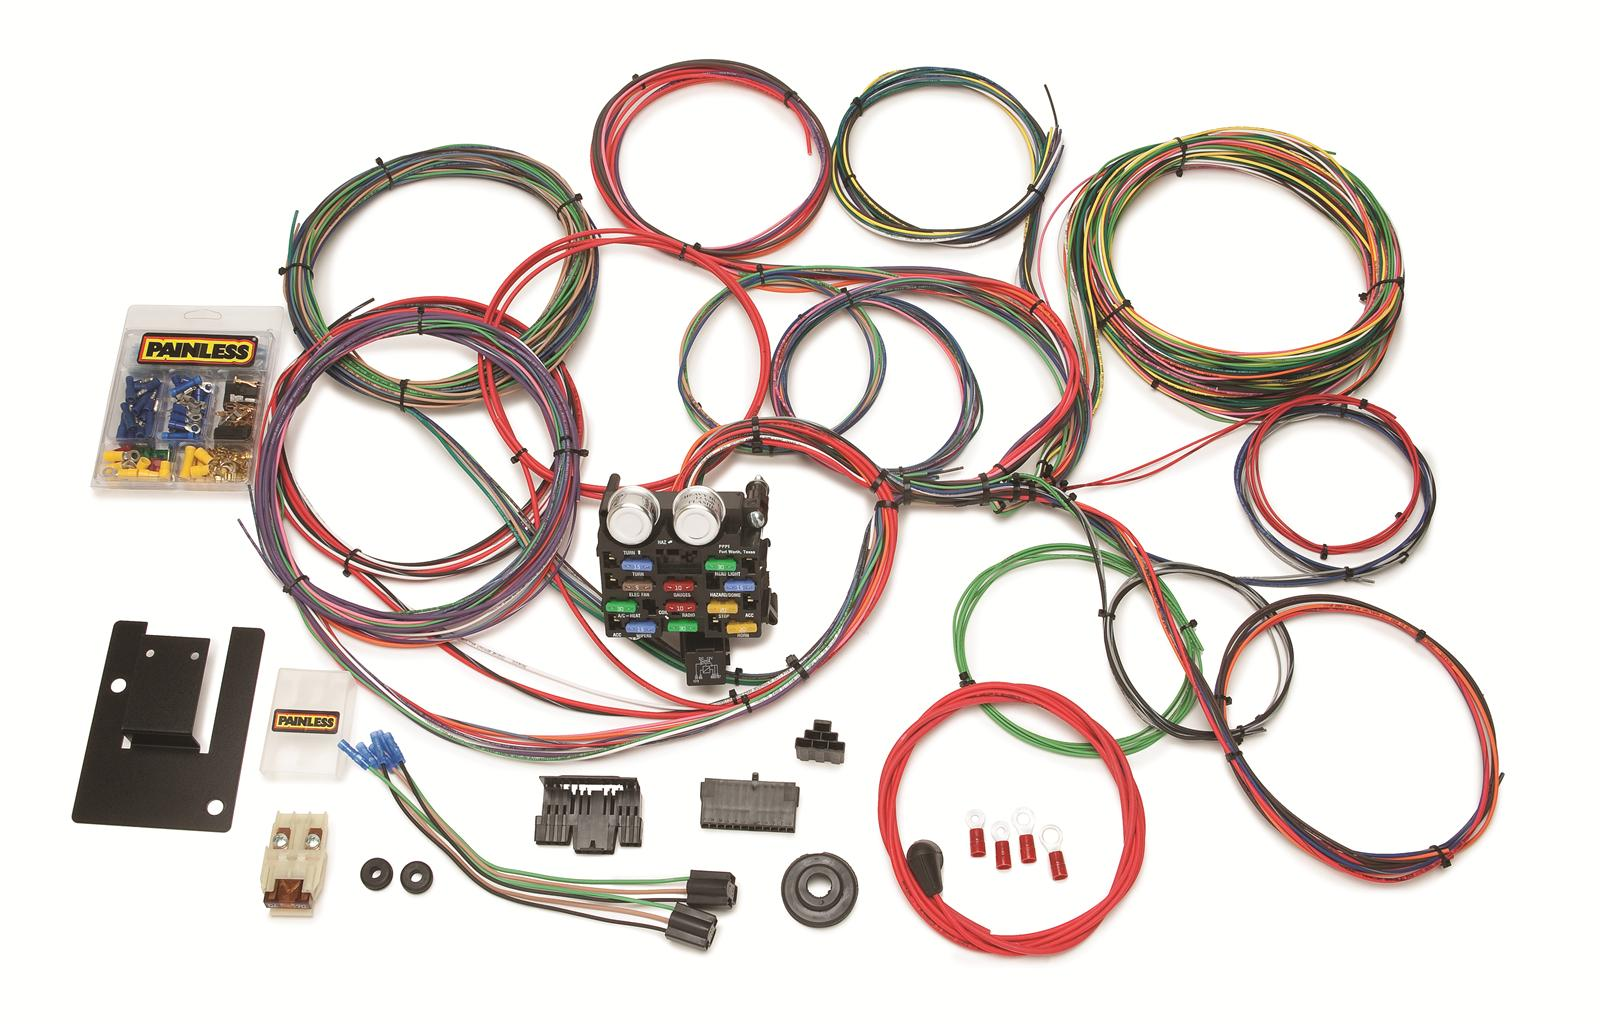 Painless Performance 21-Circuit 1955-57 Tri-Five Chevy Harnesses 20107 -  Free Shipping on Orders Over $99 at Summit Racing